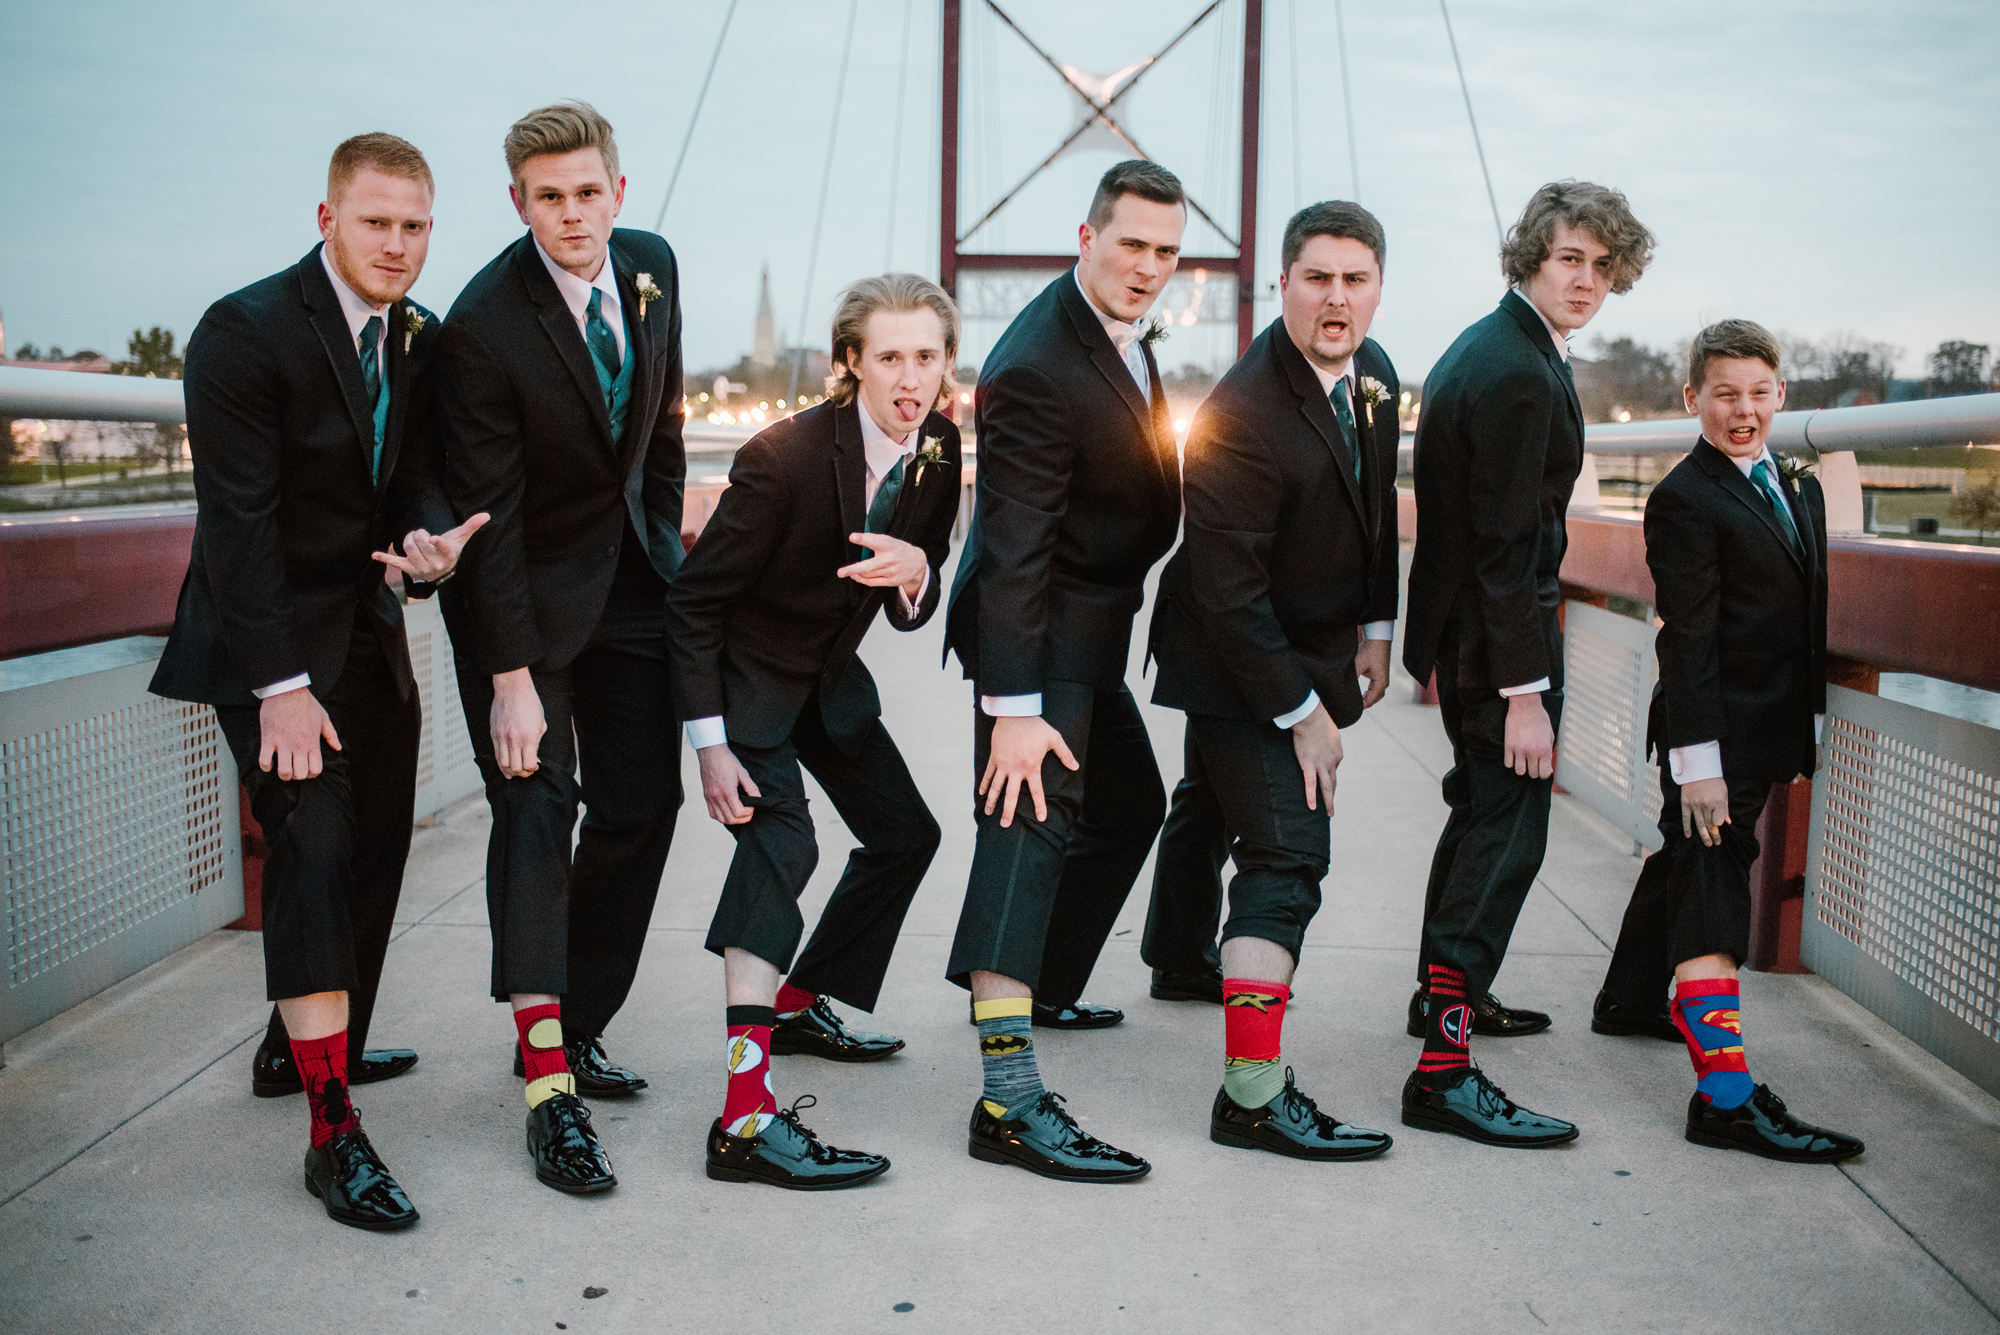 groomsmen show off socks for picture